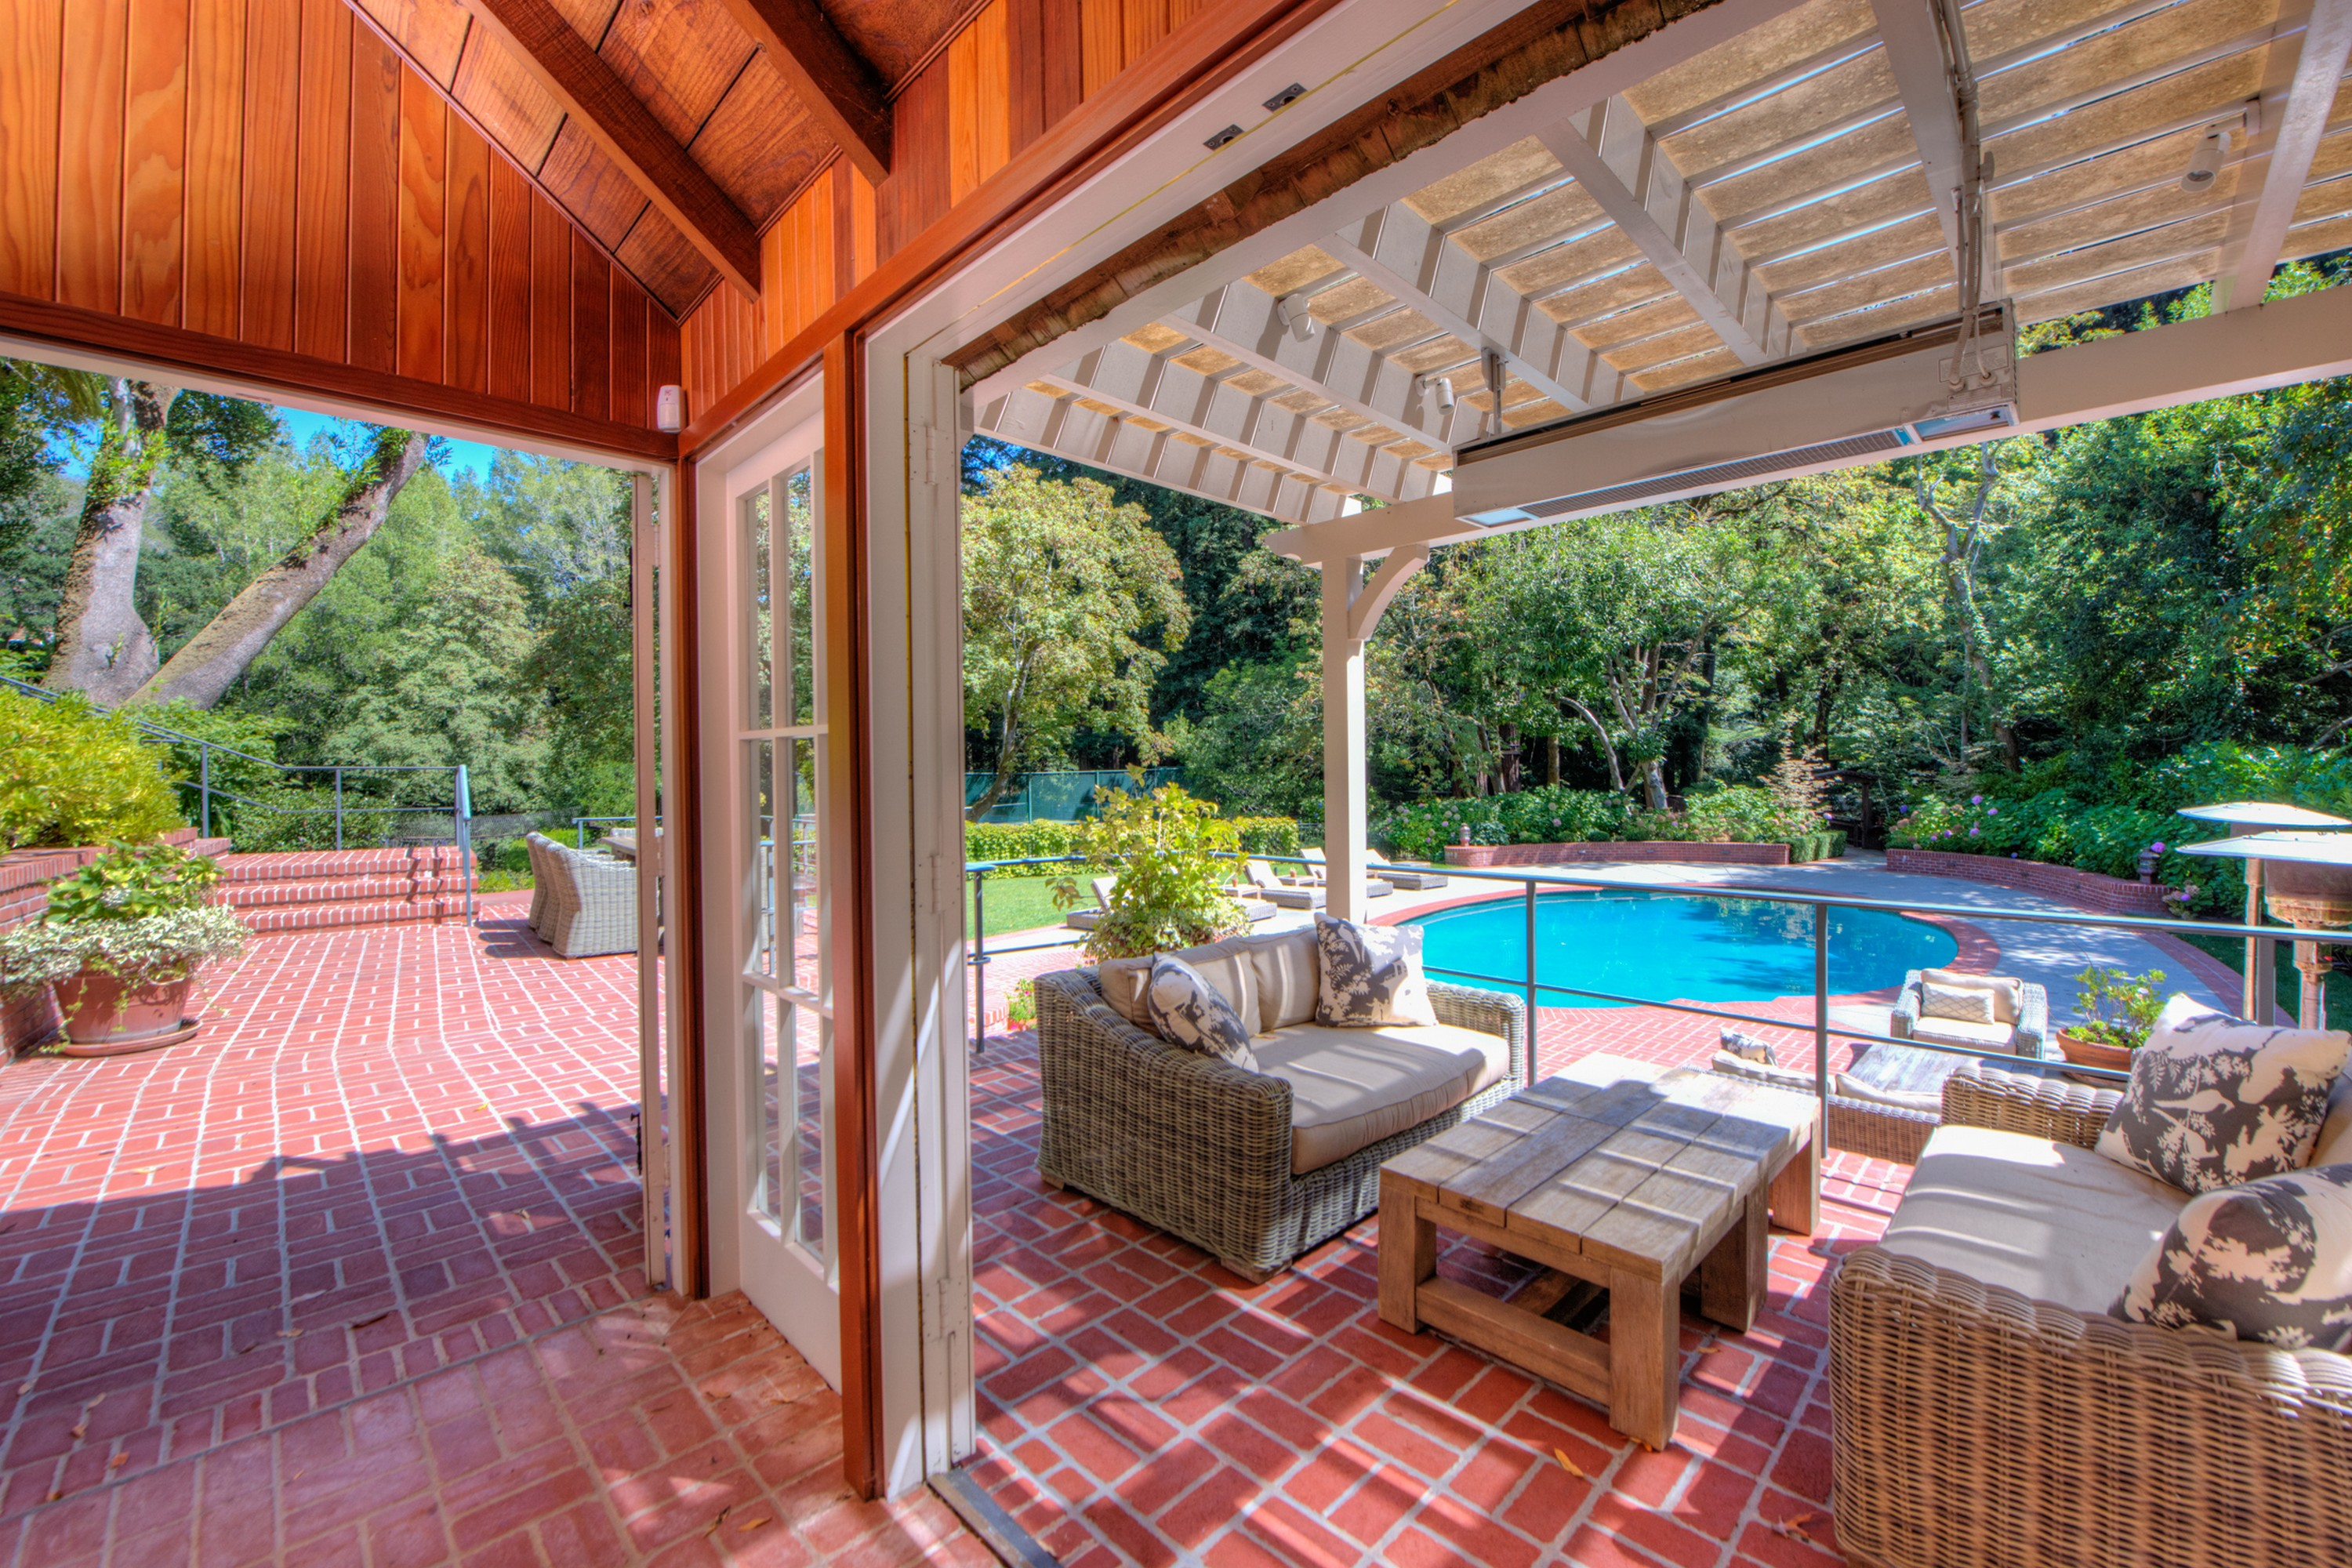 Single Family Home for Sale at Magnificent Ross Estate Compound 1 Upper Road Ross, California 94957 United States